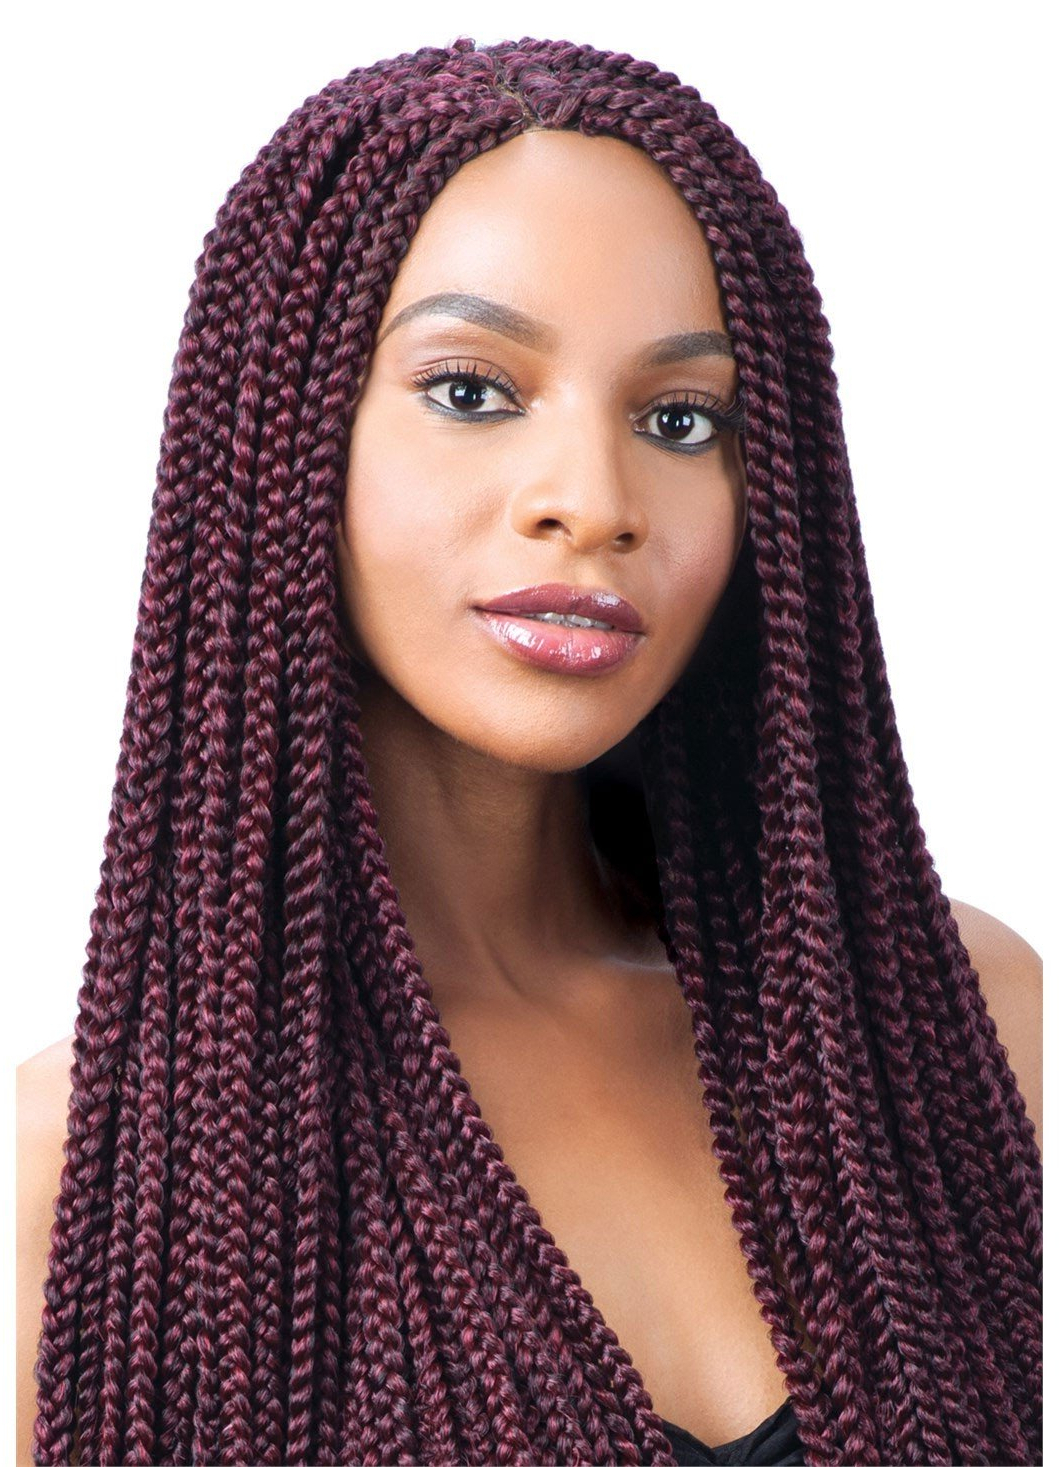 2019 Afro Under Braid Hairstyles Inside Best Braids For Afro Hair, Top Afro Hairdressers, Edmonton (View 8 of 20)